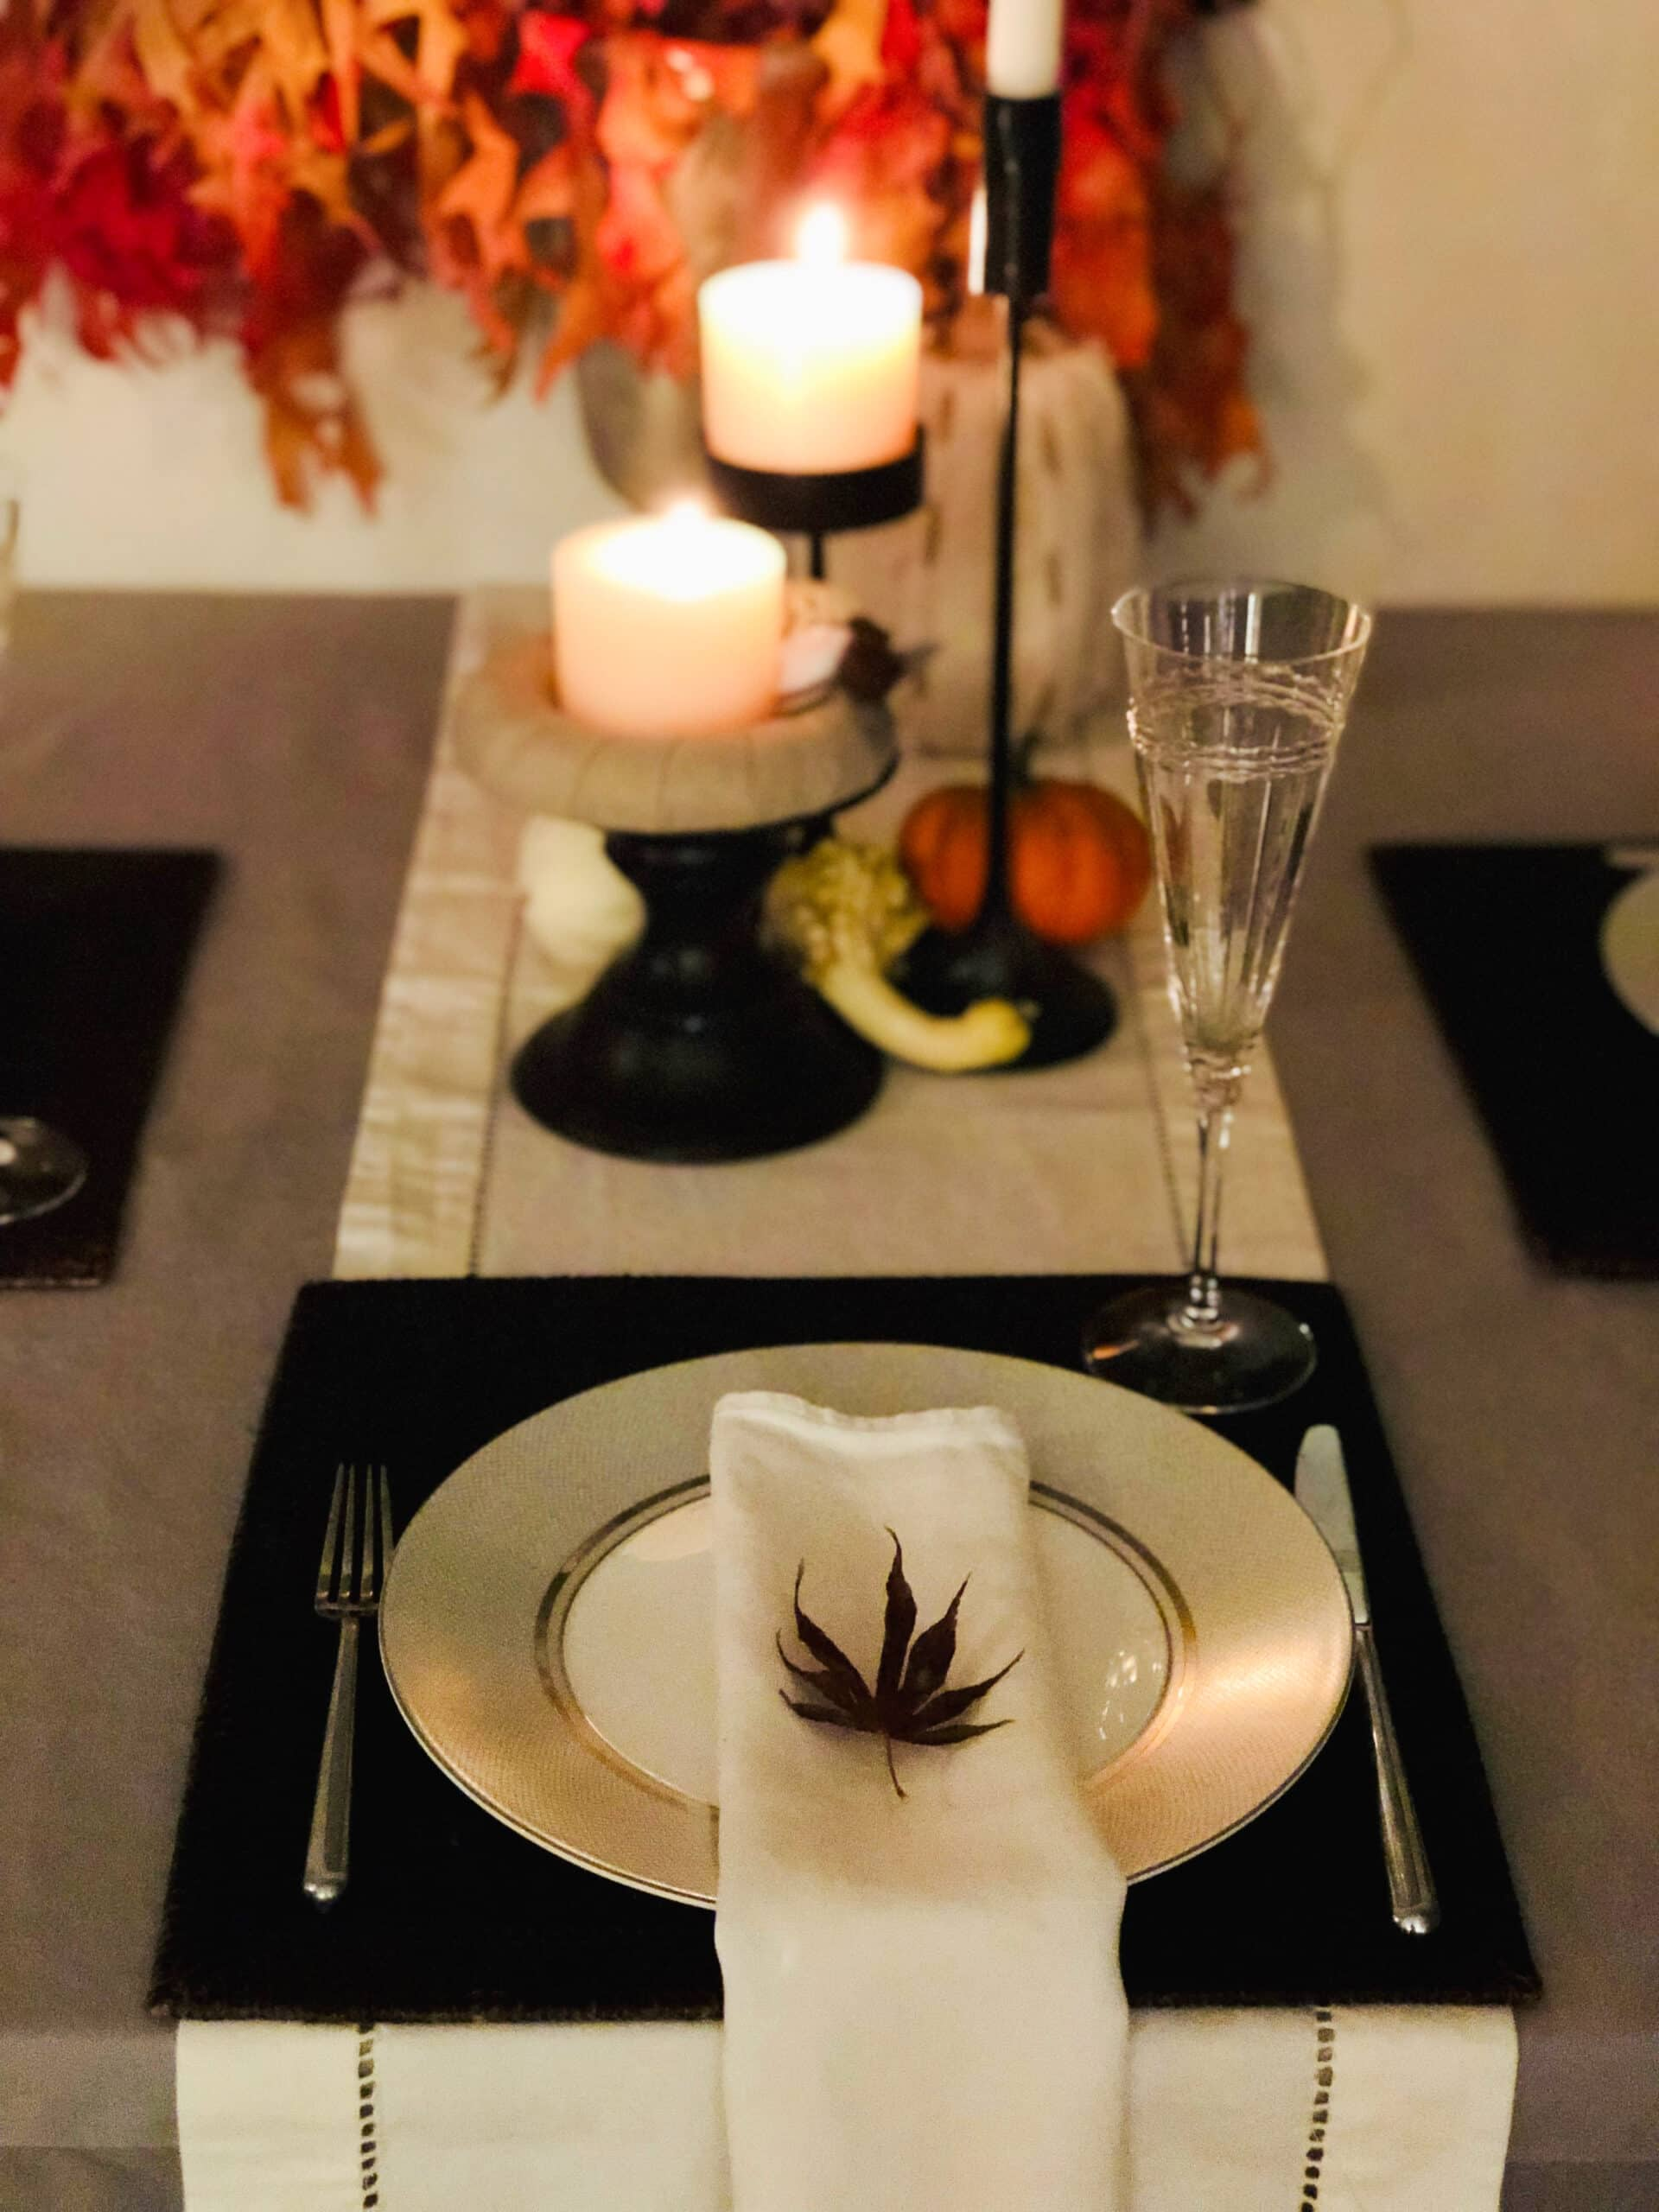 darci hether thanksgiving tablescape nyc tribeca candles champagne flute fall leaves